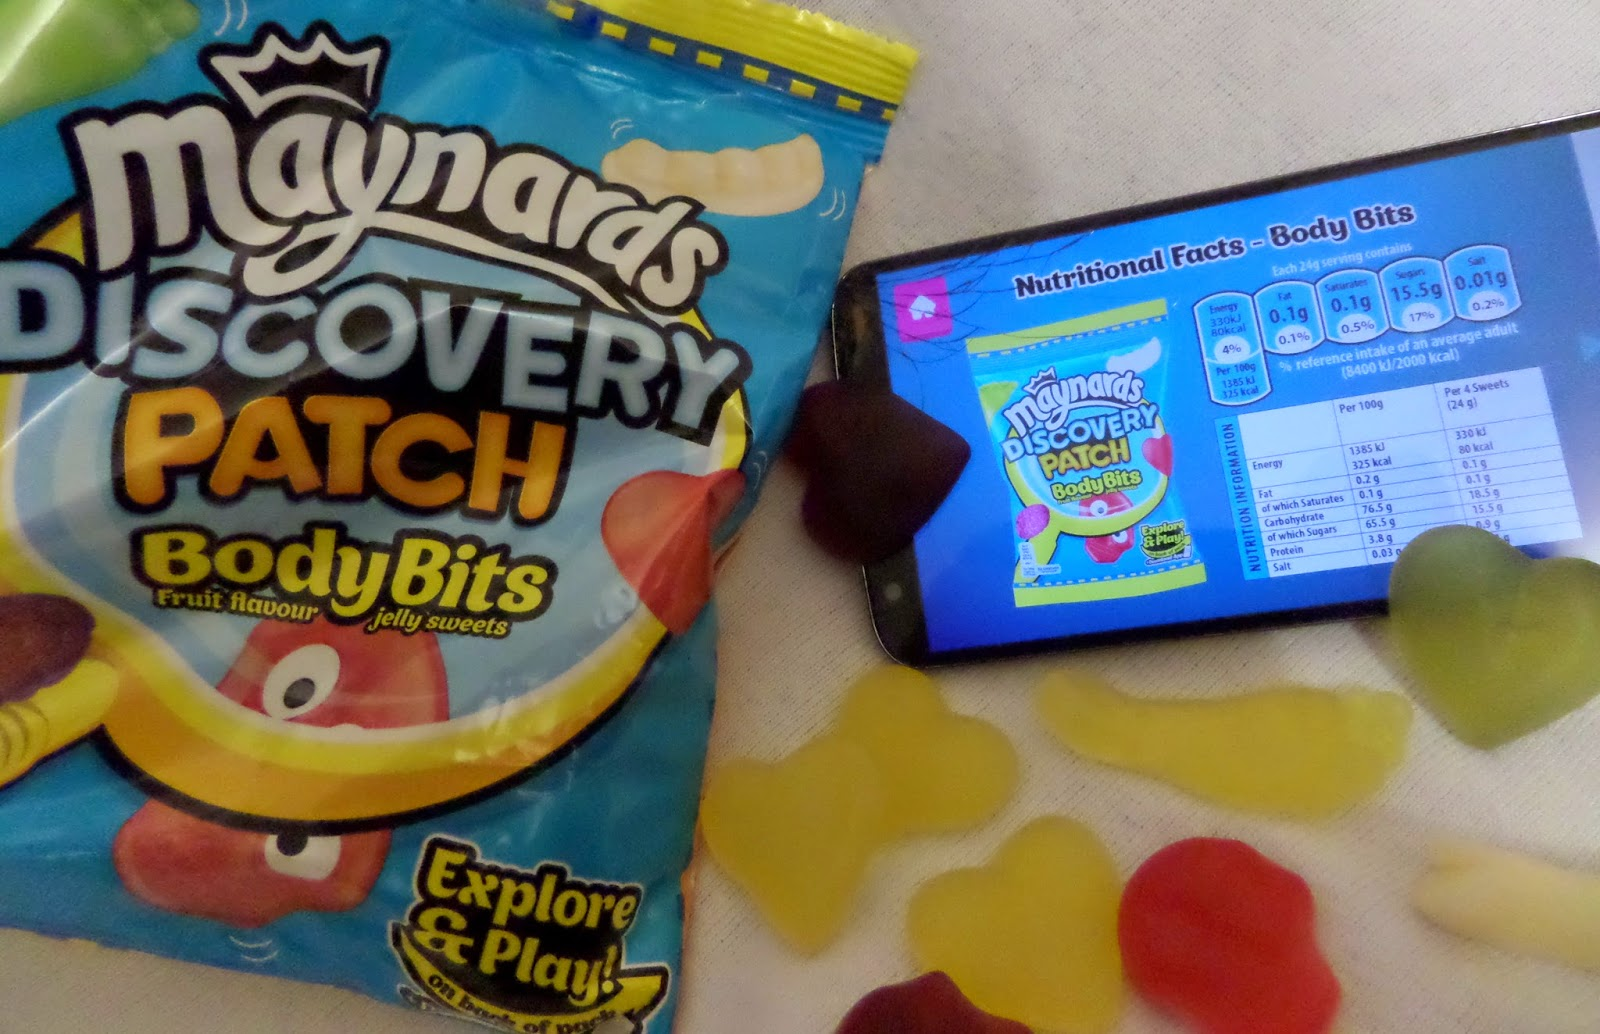 #DiscoveryPatch, technology, sweets, nutrition, app